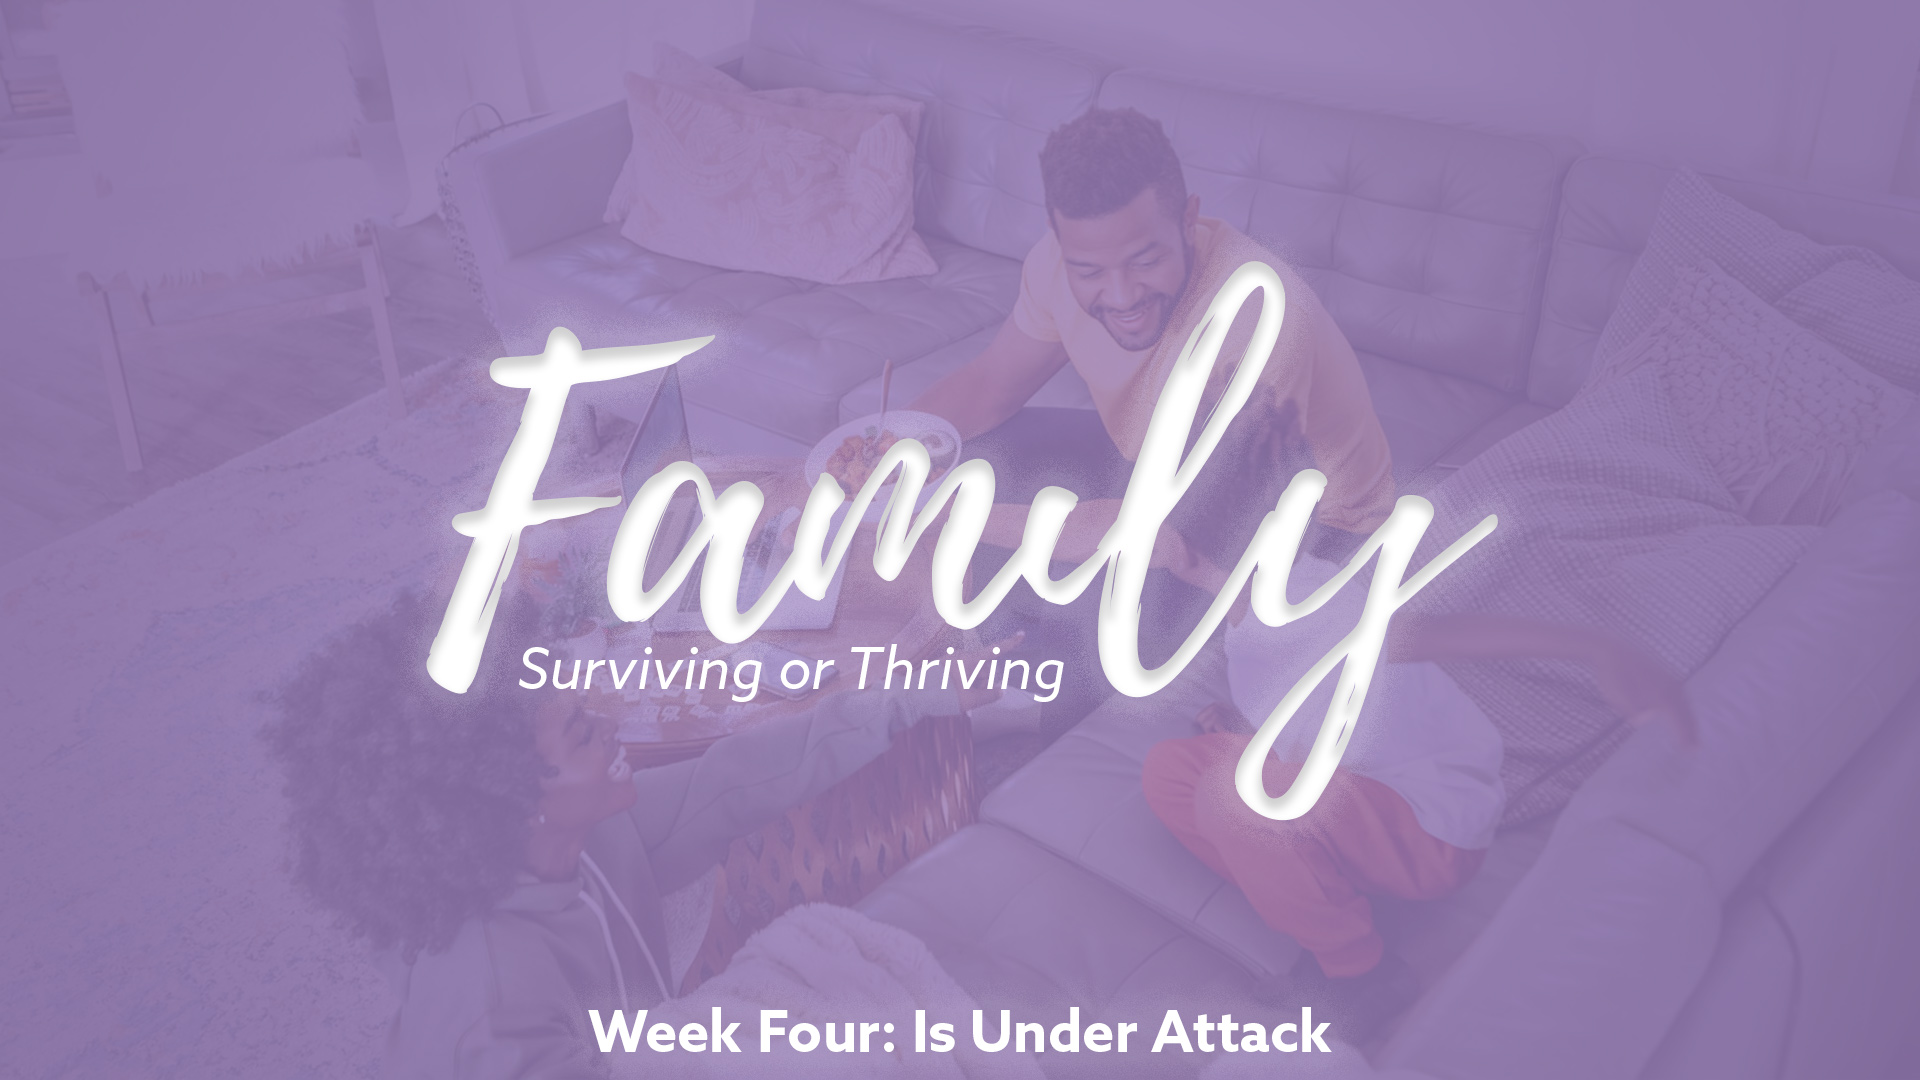 Family – Surviving or Thriving: Is Under Attack